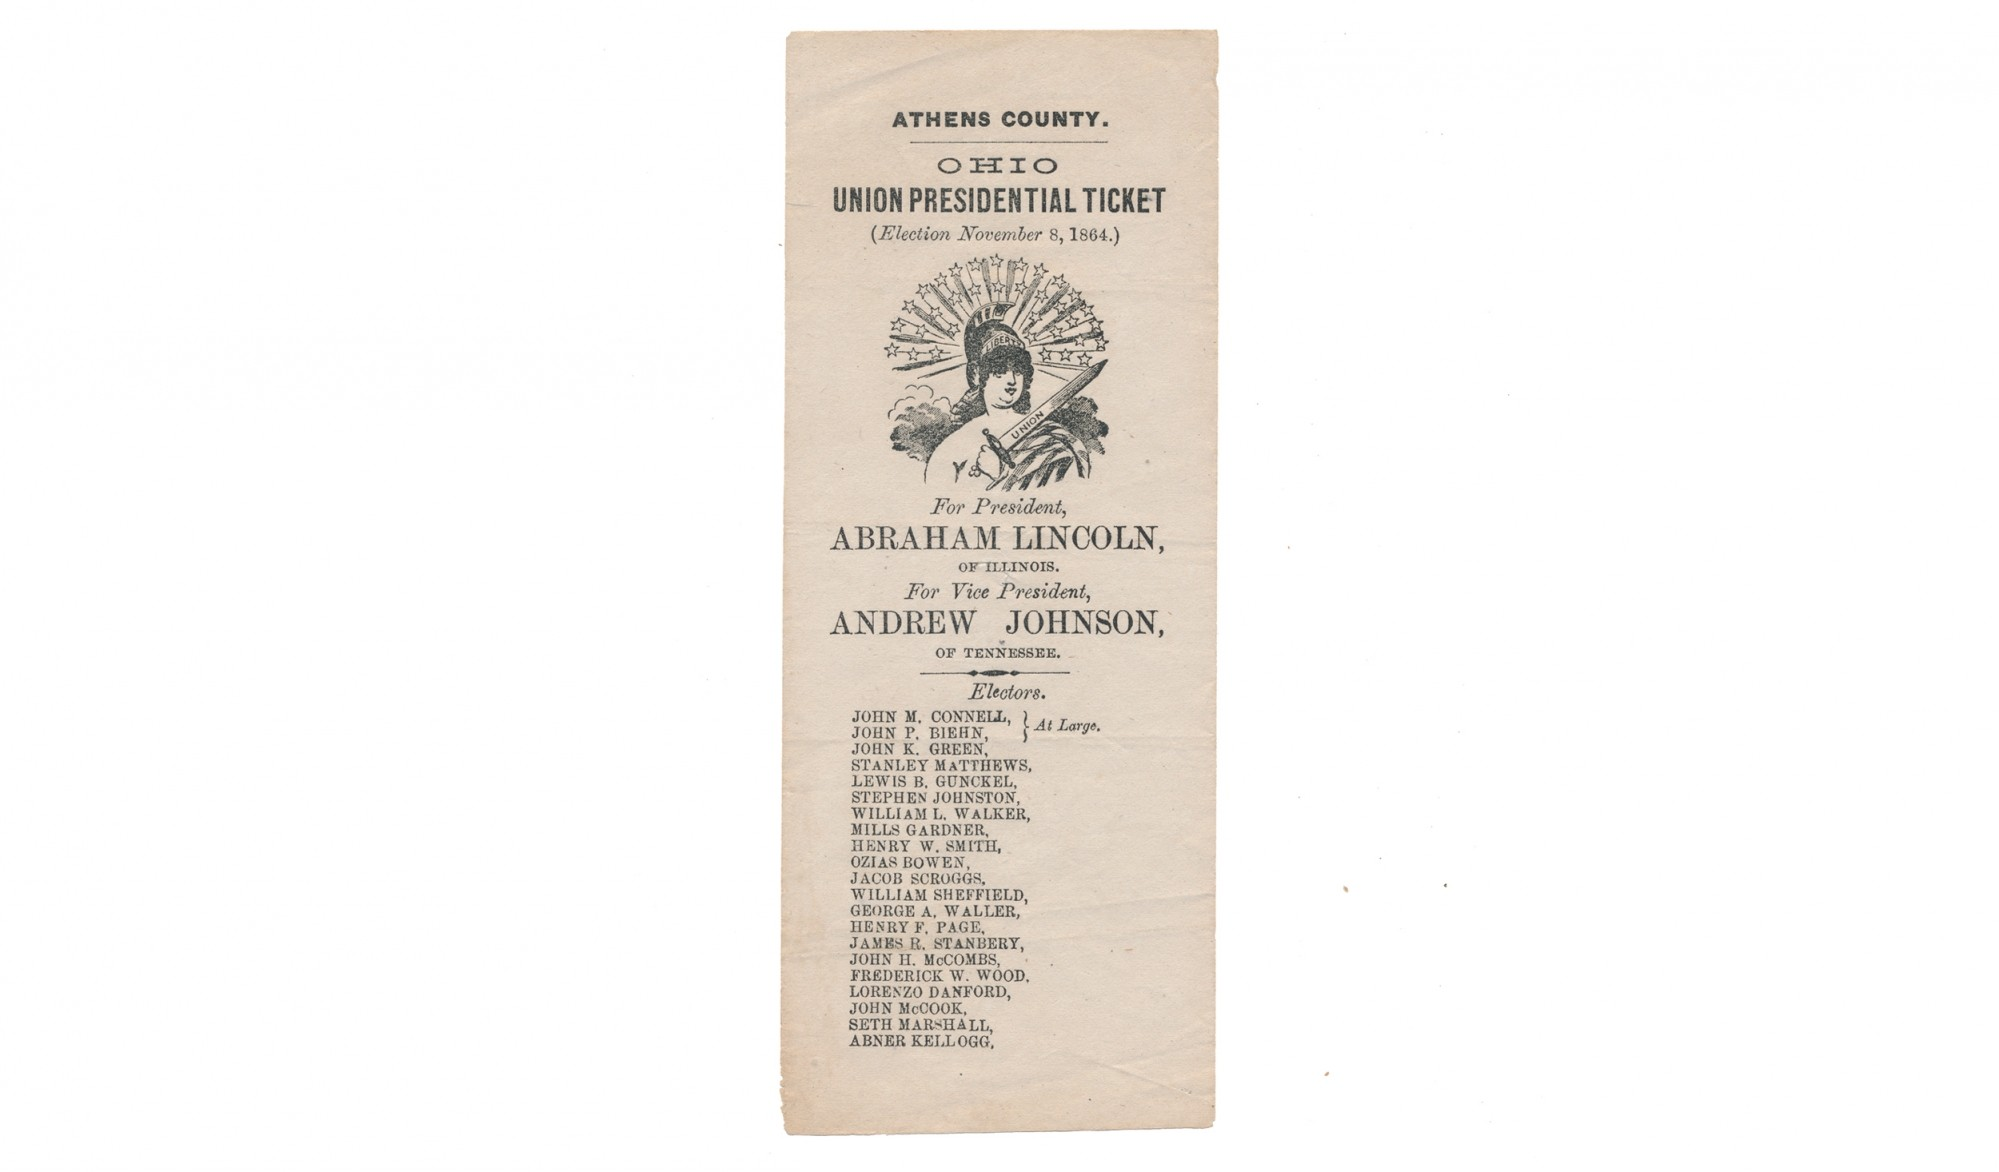 LINCOLN / JOHNSON 1864 CAMPAIGN FLYER - ATHENS COUNTY, OHIO UNION PRESIDENTIAL TICKET